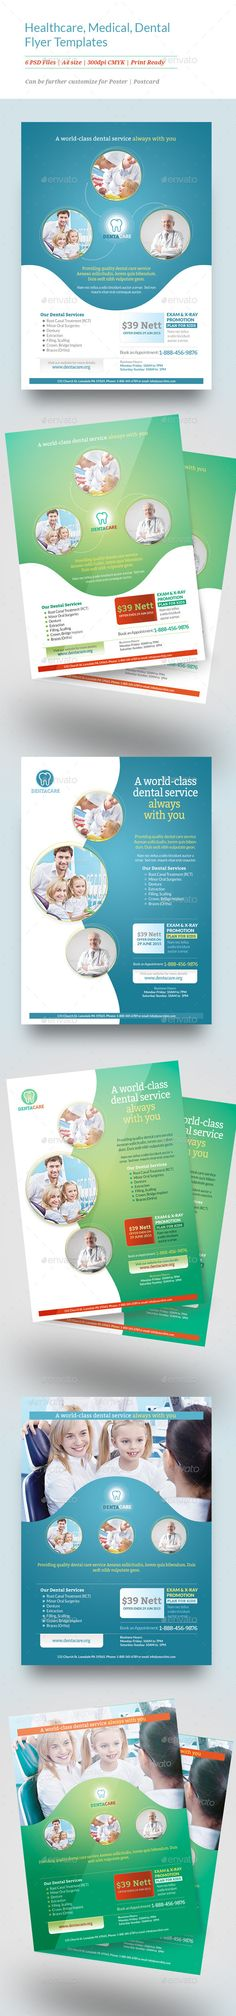 Healthcare, Medical, Dental Flyer Templates - Corporate Flyers